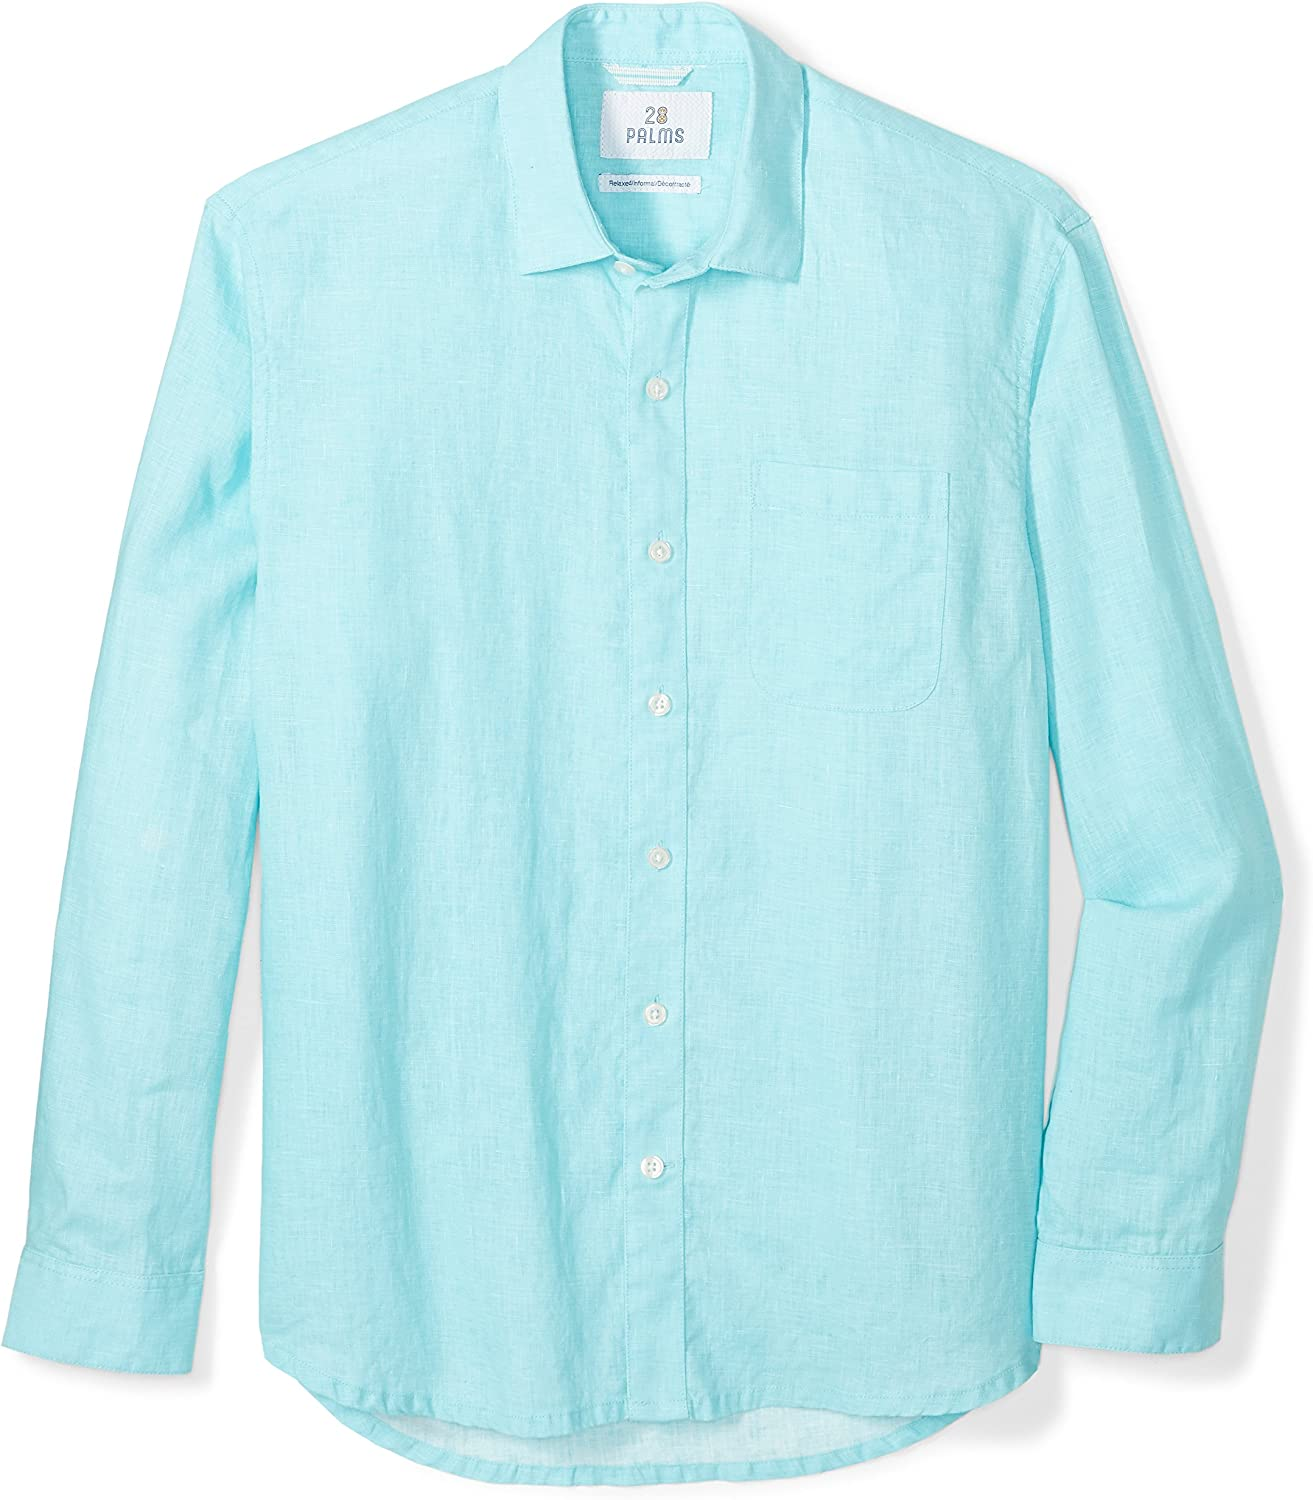 28 Palms Mens Relaxed-Fit Long-Sleeve 100/% Linen Embroidered Guayabera Shirt Brand